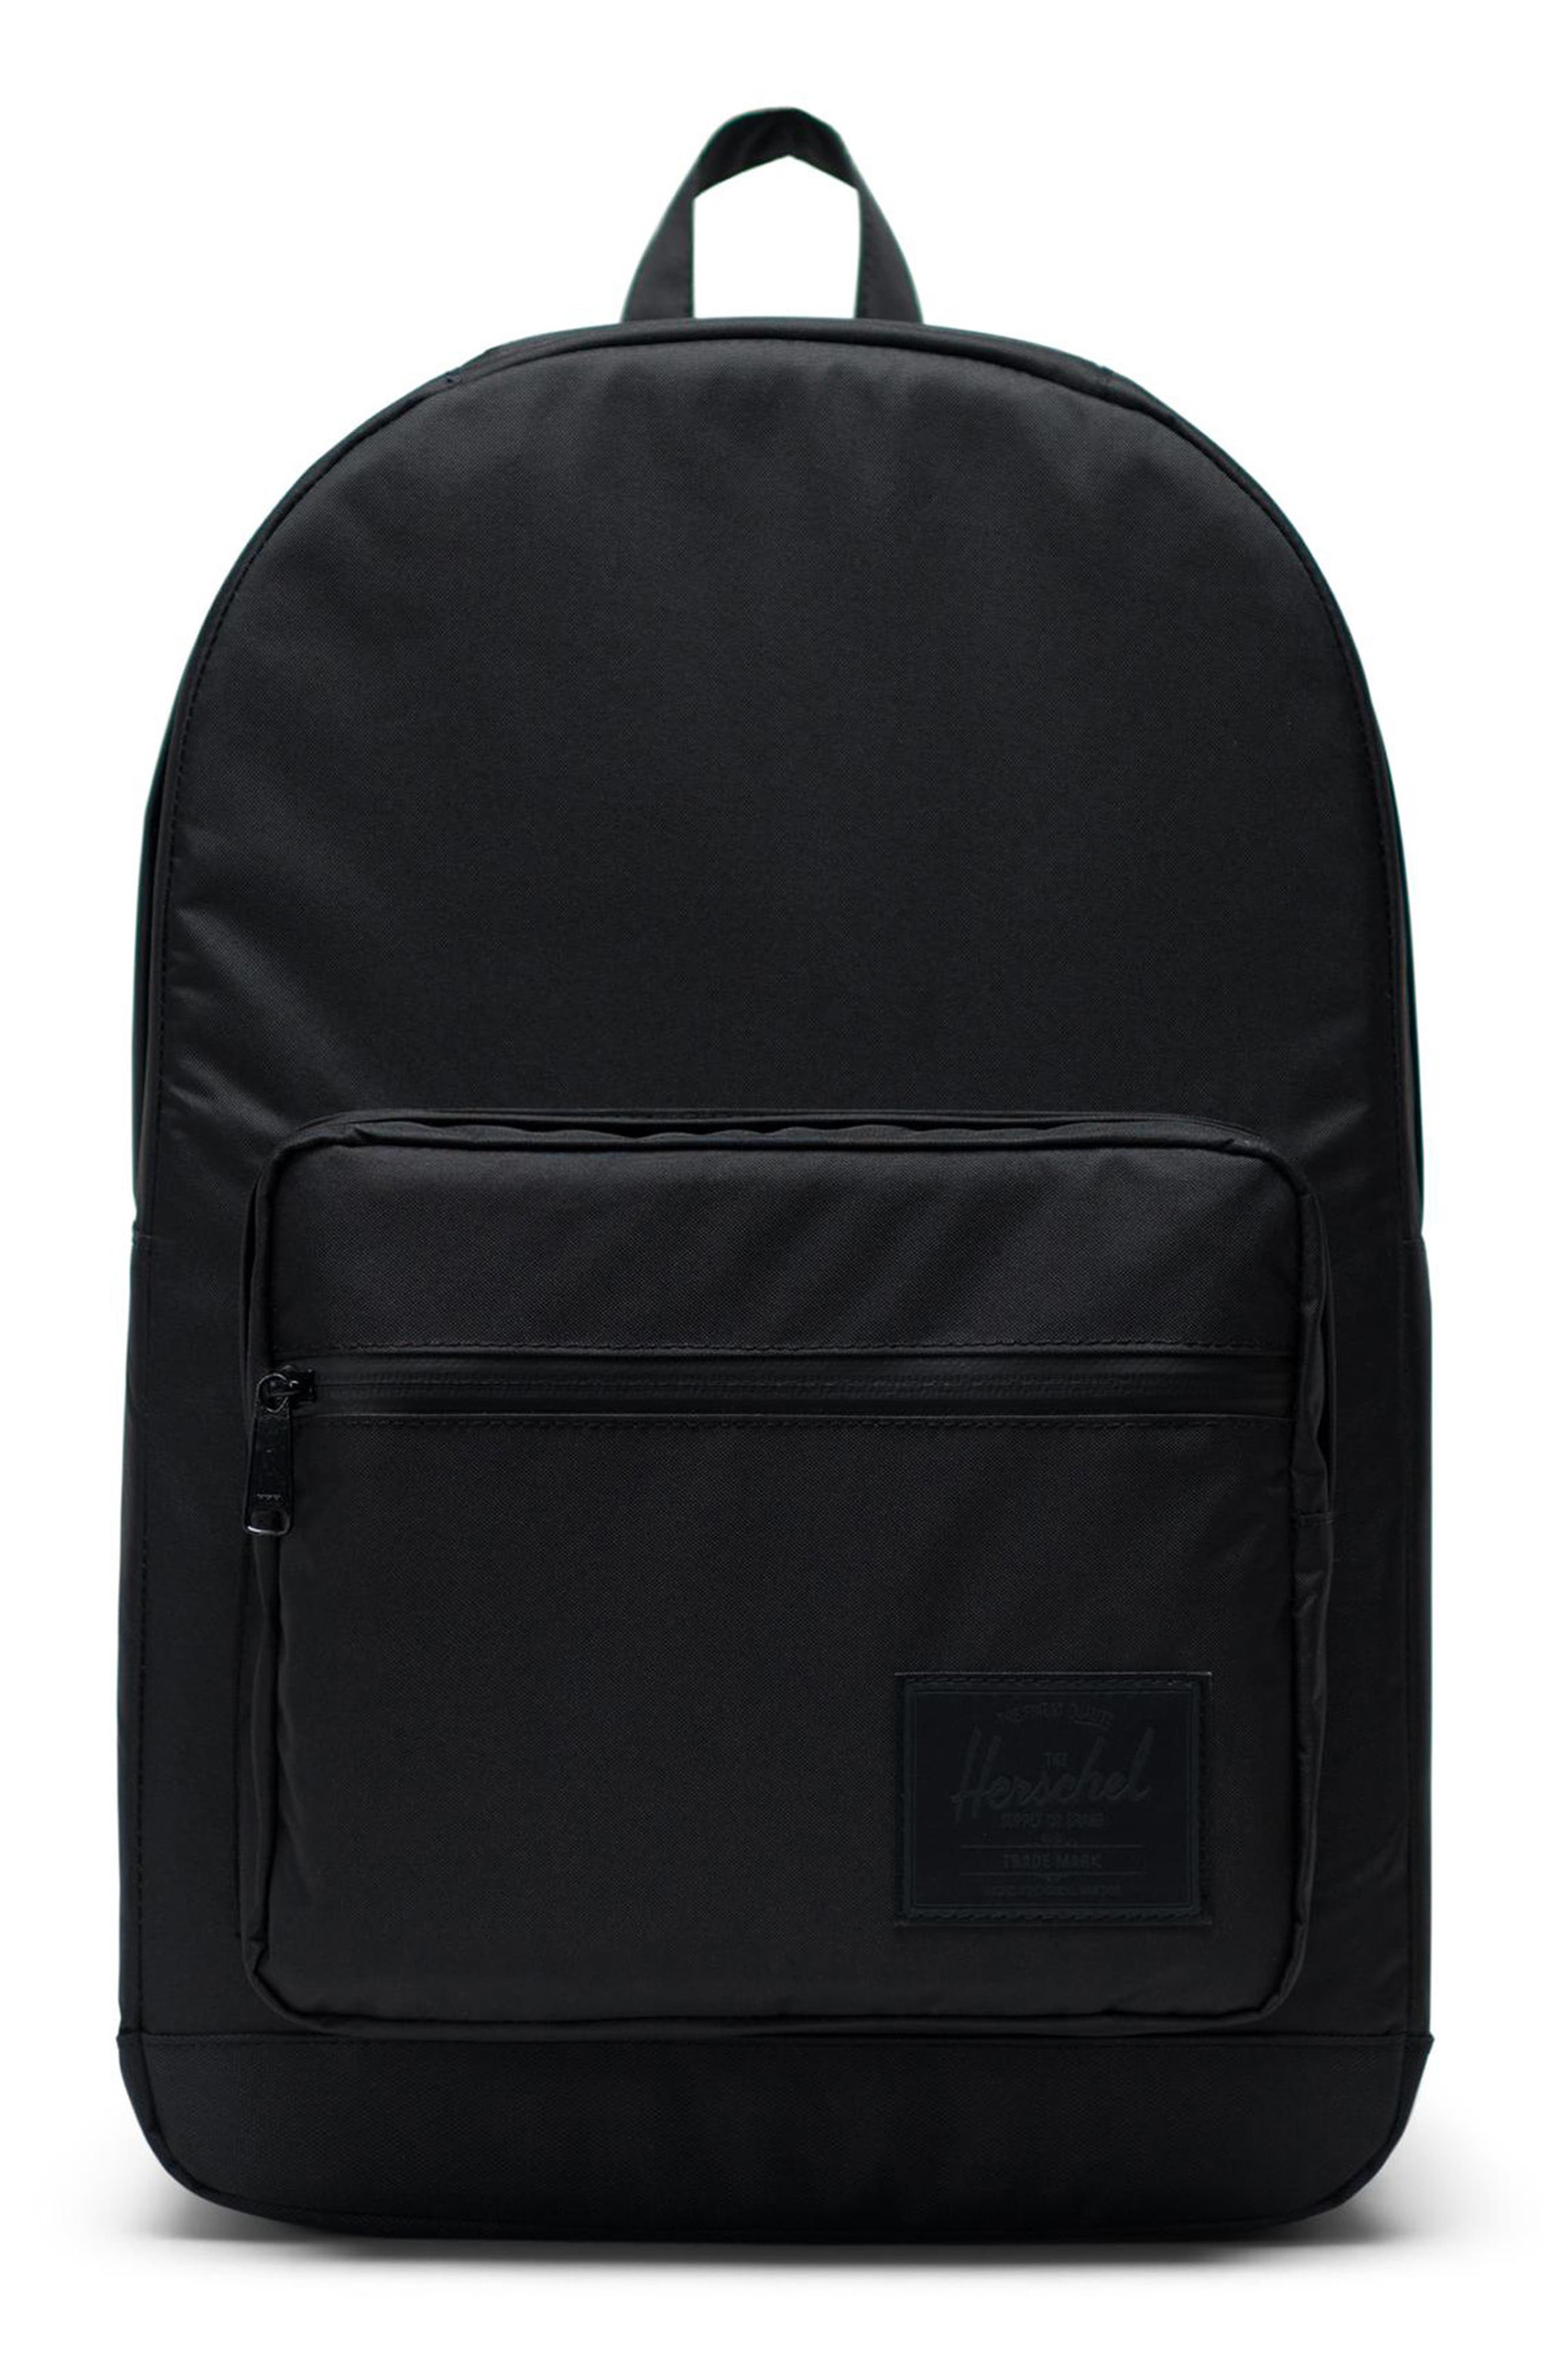 Herschel Supply Co. Pop Quiz Light Backpack - Black